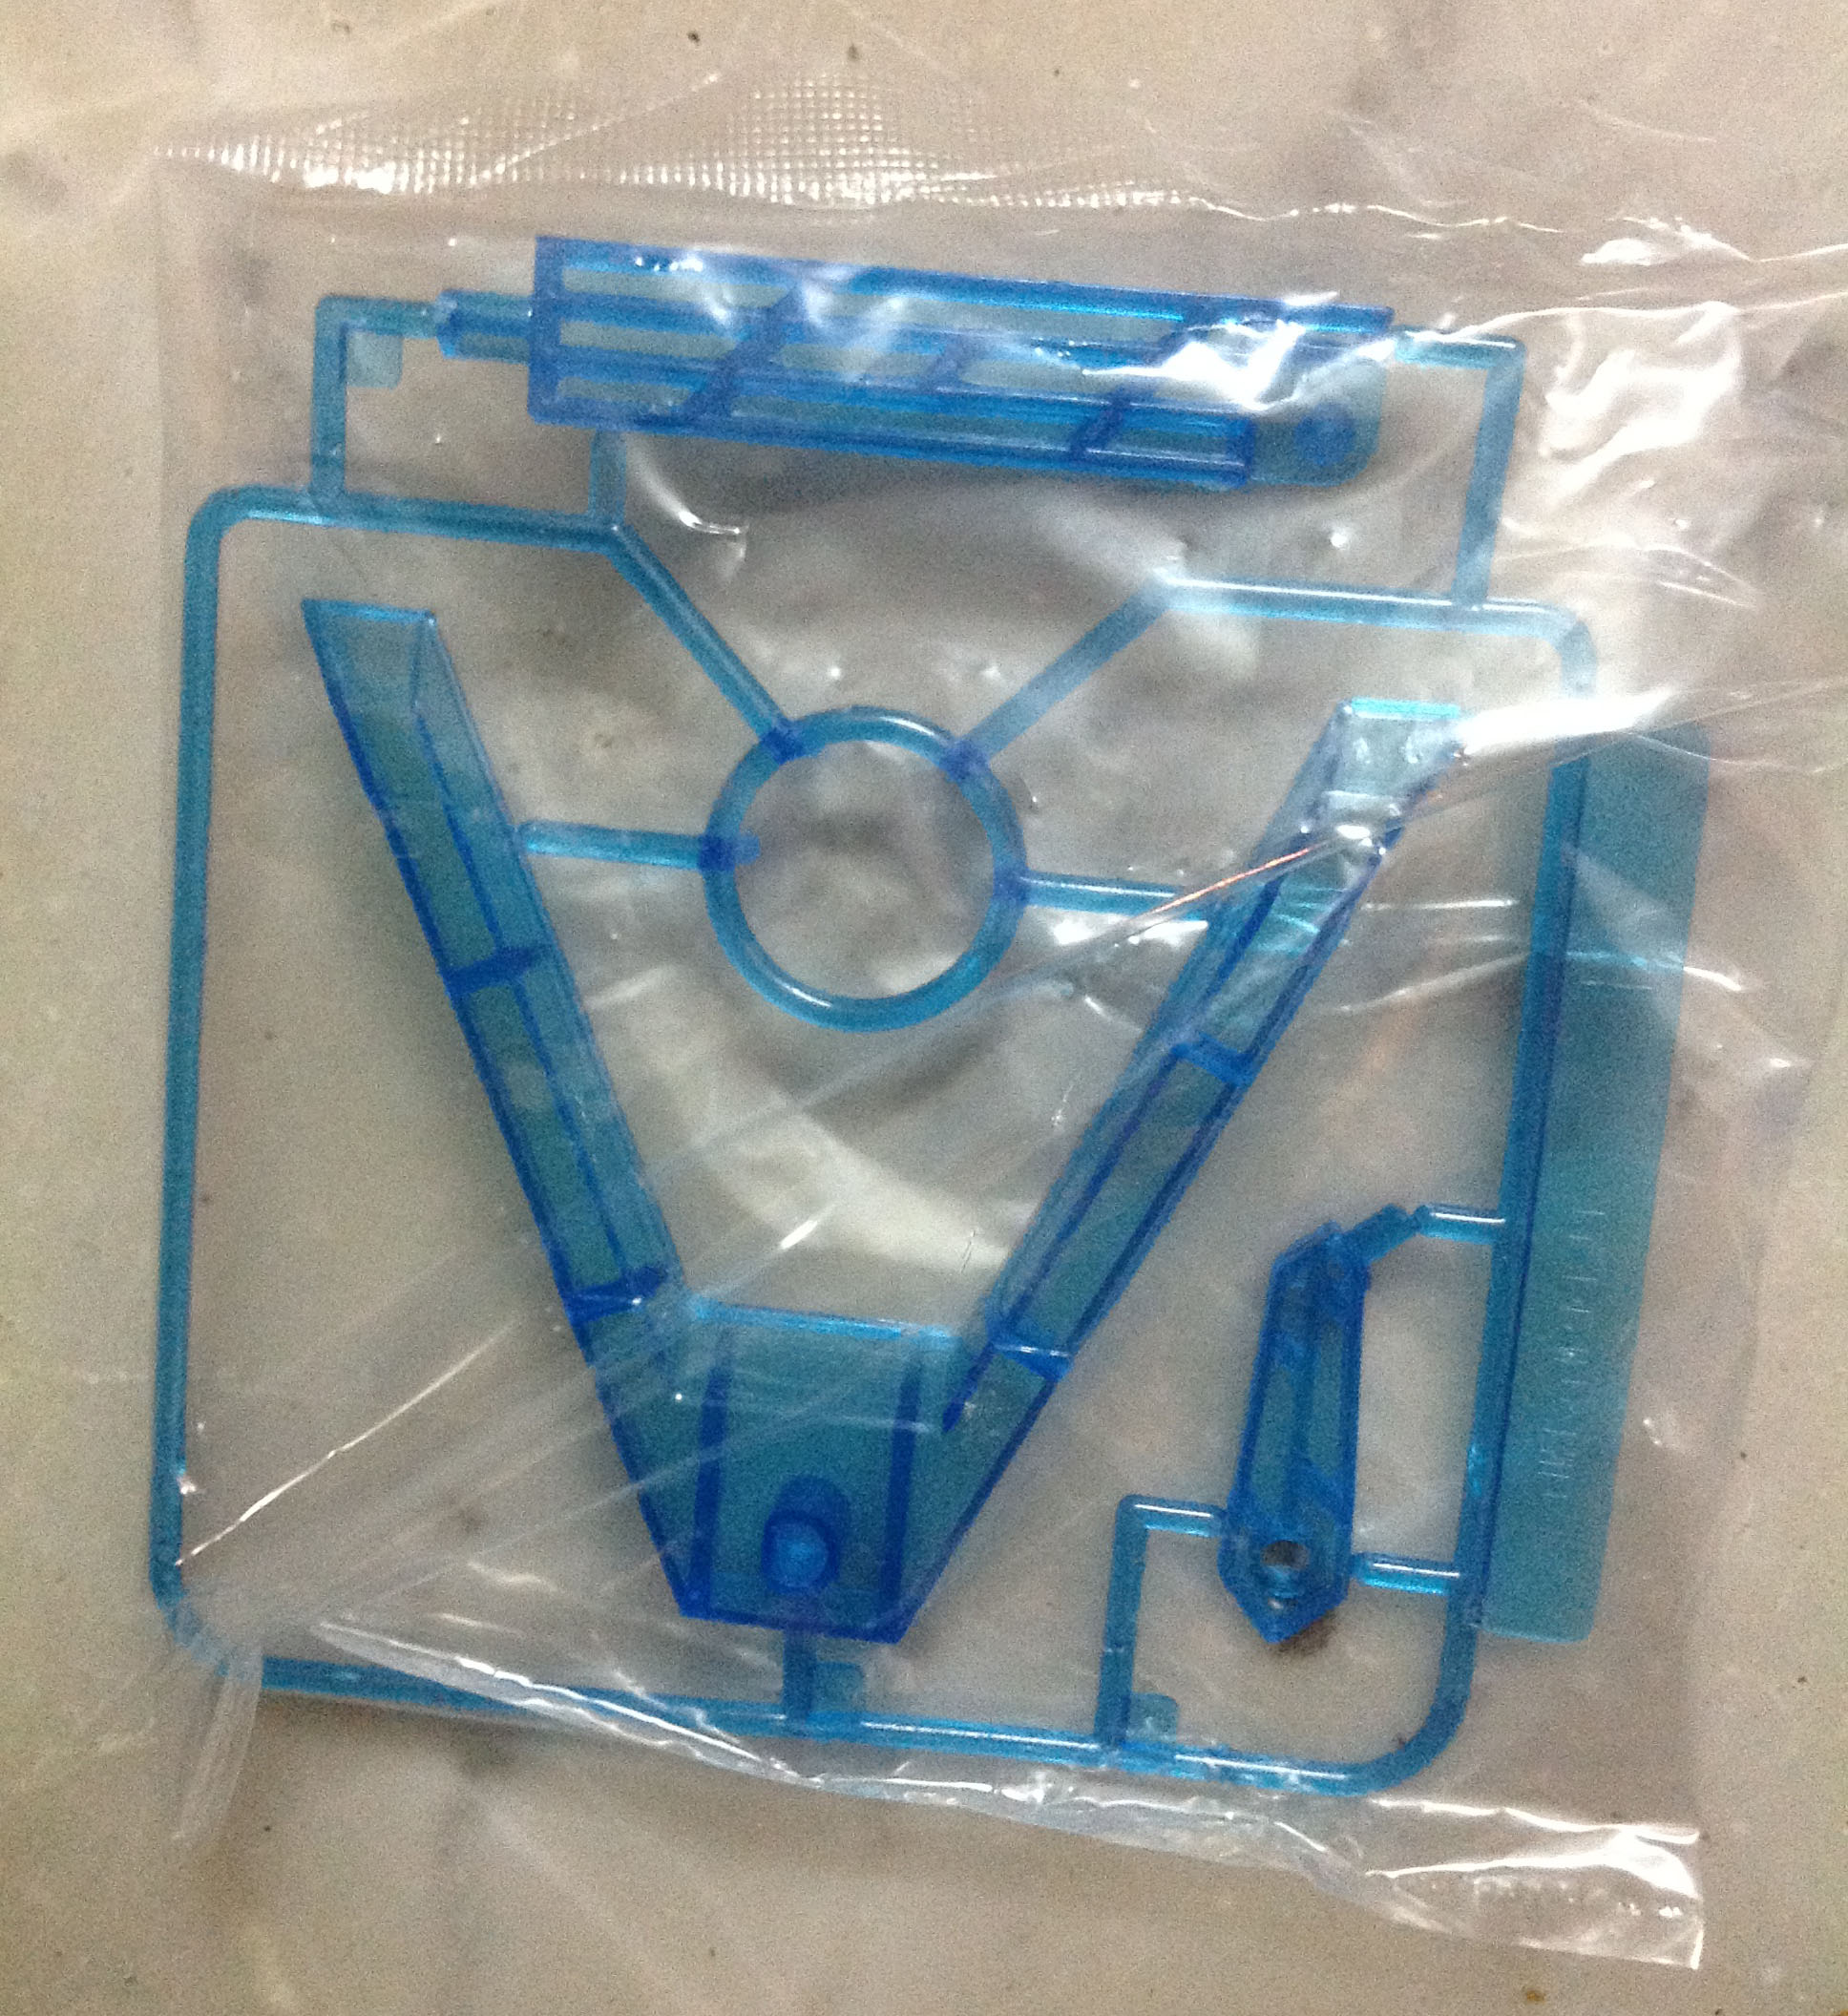 SD, 1/144 Action Base (Clear Blue)